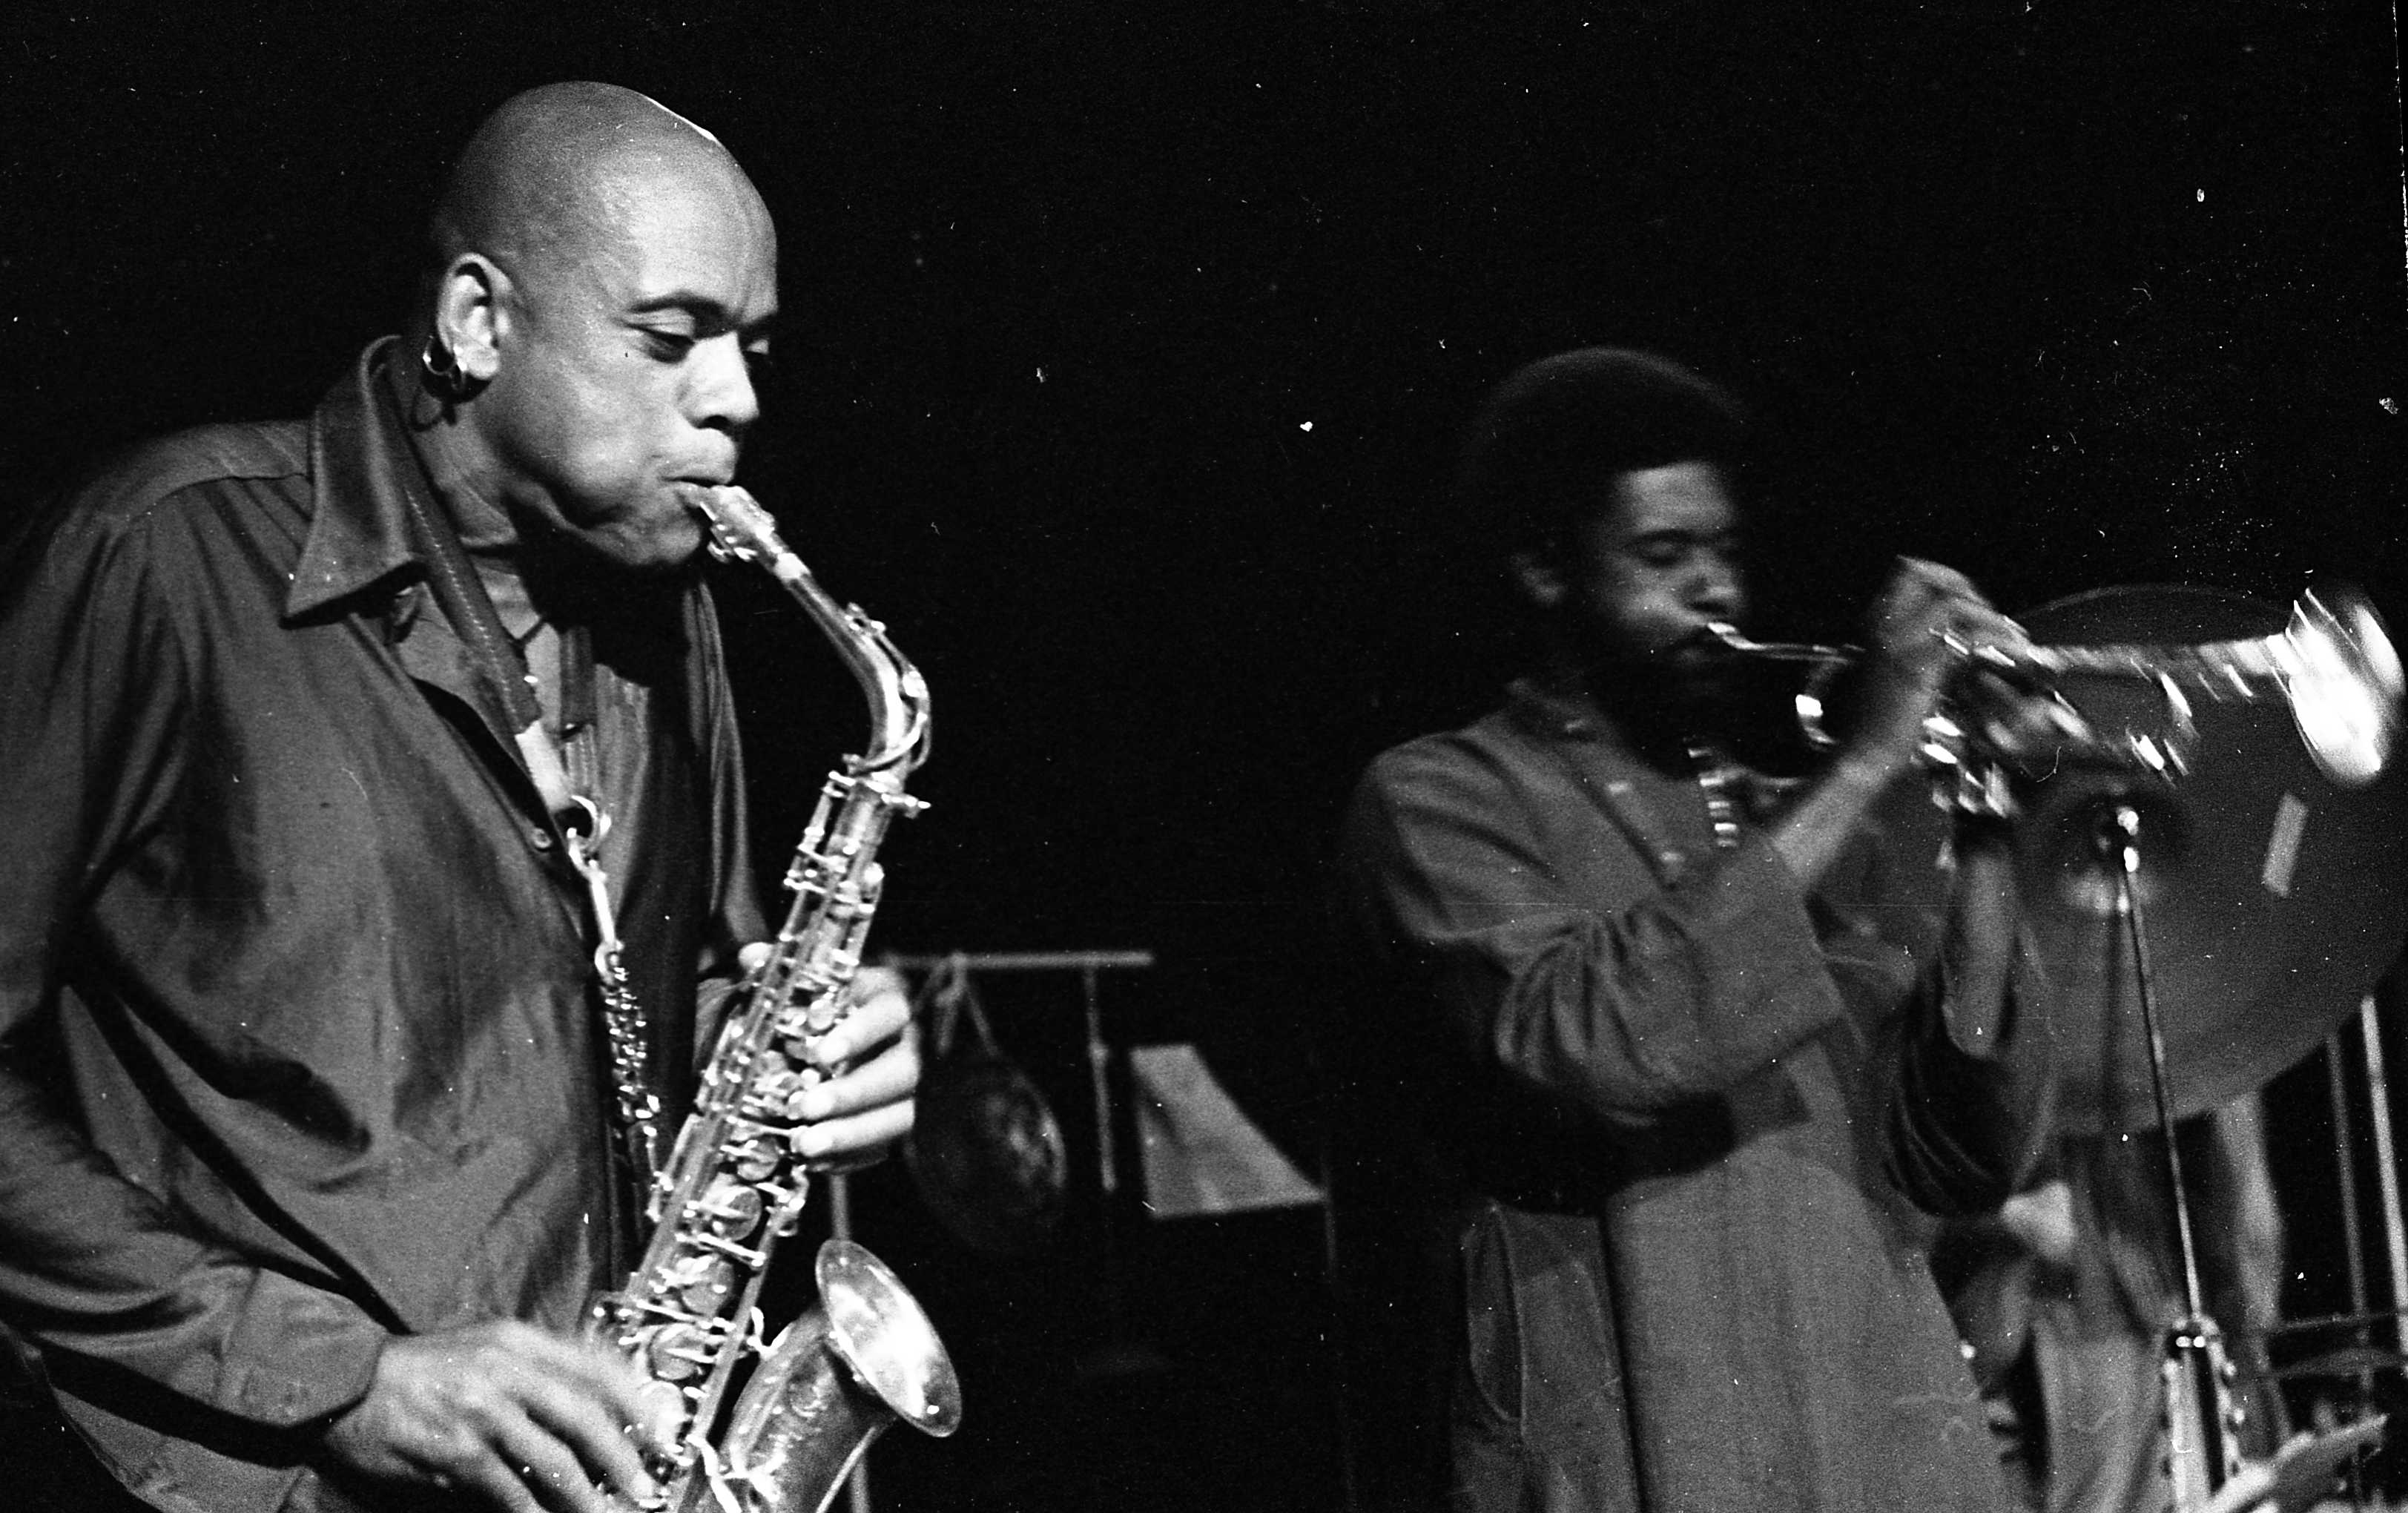 """This is a rare shot of what Julius called The Janus Company -- a trio of Julius Hemphill (alto saxophone, maybe flute), Baikida EJ Carroll (trumpet), and my brother Alex on drums. They played a mere handful of concerts in the U.S. -- in Los Angeles (seen here at the Century City Playhouse), in Berkeley at a place called Mapenzi, and later in Philadelphia (at The Foxhole maybe?) with Abdul Wadud added on 'cello. I think this photo may portray the first gig Alex ever did with Julius. As was often the case, when someone asked creator/curator of the concert series Lee Kaplan who in Los Angeles should play drums on a concert, he recommended Alex, and Julius LOVED Alex's playing right away, which led to those future gigs. I think Alex was about 22 years old at the time (which means I was, too). They actually recorded an album for Lee's emerging Aten label which was never released. But they went on to tour Europe -- a tour which did not go especially well as I understood, owing to Julius' self-destructive impulses and some other complications. Alex and I had already been made aware of Baikida's playing from Julius' recording """"Dogon A.D."""" from his St. Louis years, and Baikida was phenomenal on trumpet as well as being a sweet human. He also made some really fantastic records of his own around this time. Years after The Janus Company, after Julius had had to have one of his legs amputated at the knee (an alcoholic/diabetic gang green scenario), Julius took some down time at his aunt's in Oakland CA and got himself together, and during this time he contacted Alex about his desire to start an electric band with him, along with Jumma Santos (percussion), yours truly on guitar, and a bassist. Julius asked Alex who he recommended, and he suggested Steuart Liebig (who eventually started calling himself """"Steubig"""" around this time for some reason I have never understood, in spite of his repeated explanations). This became Julius Arthur Hemphill and the JAH Band (as in Julius Arthur """